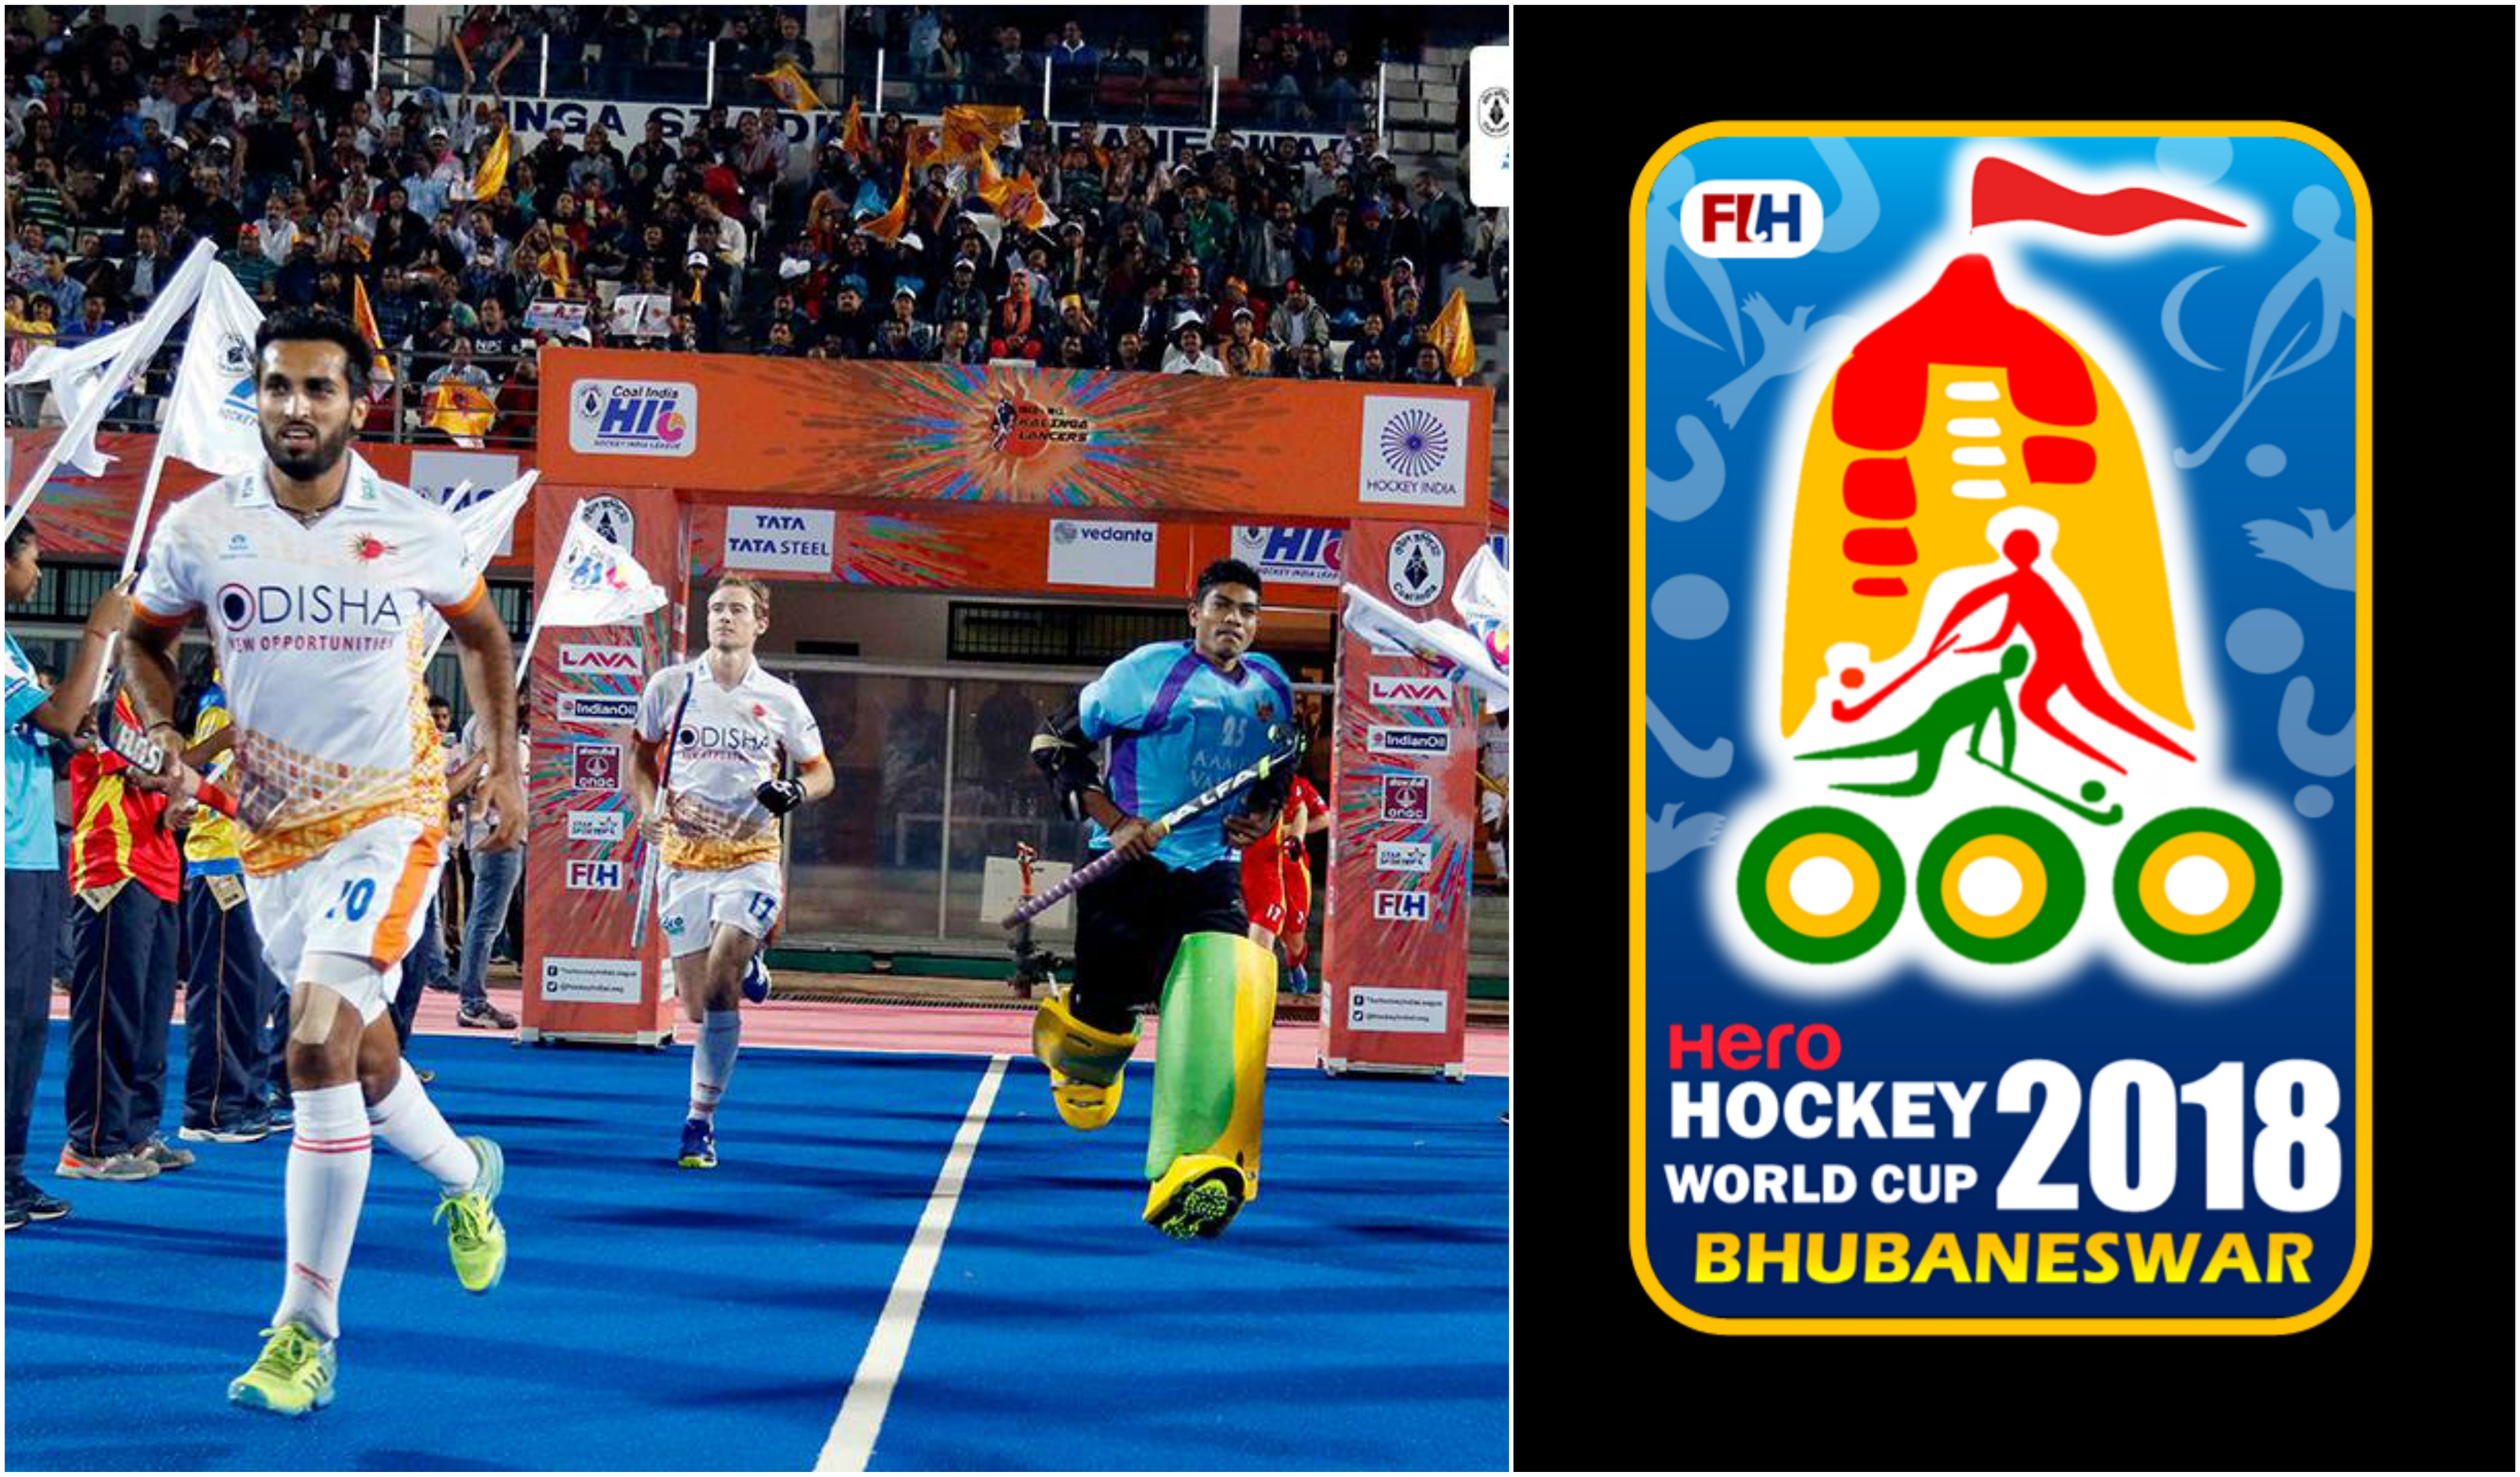 Kalinga stadium hockey world cup bhubaneswar